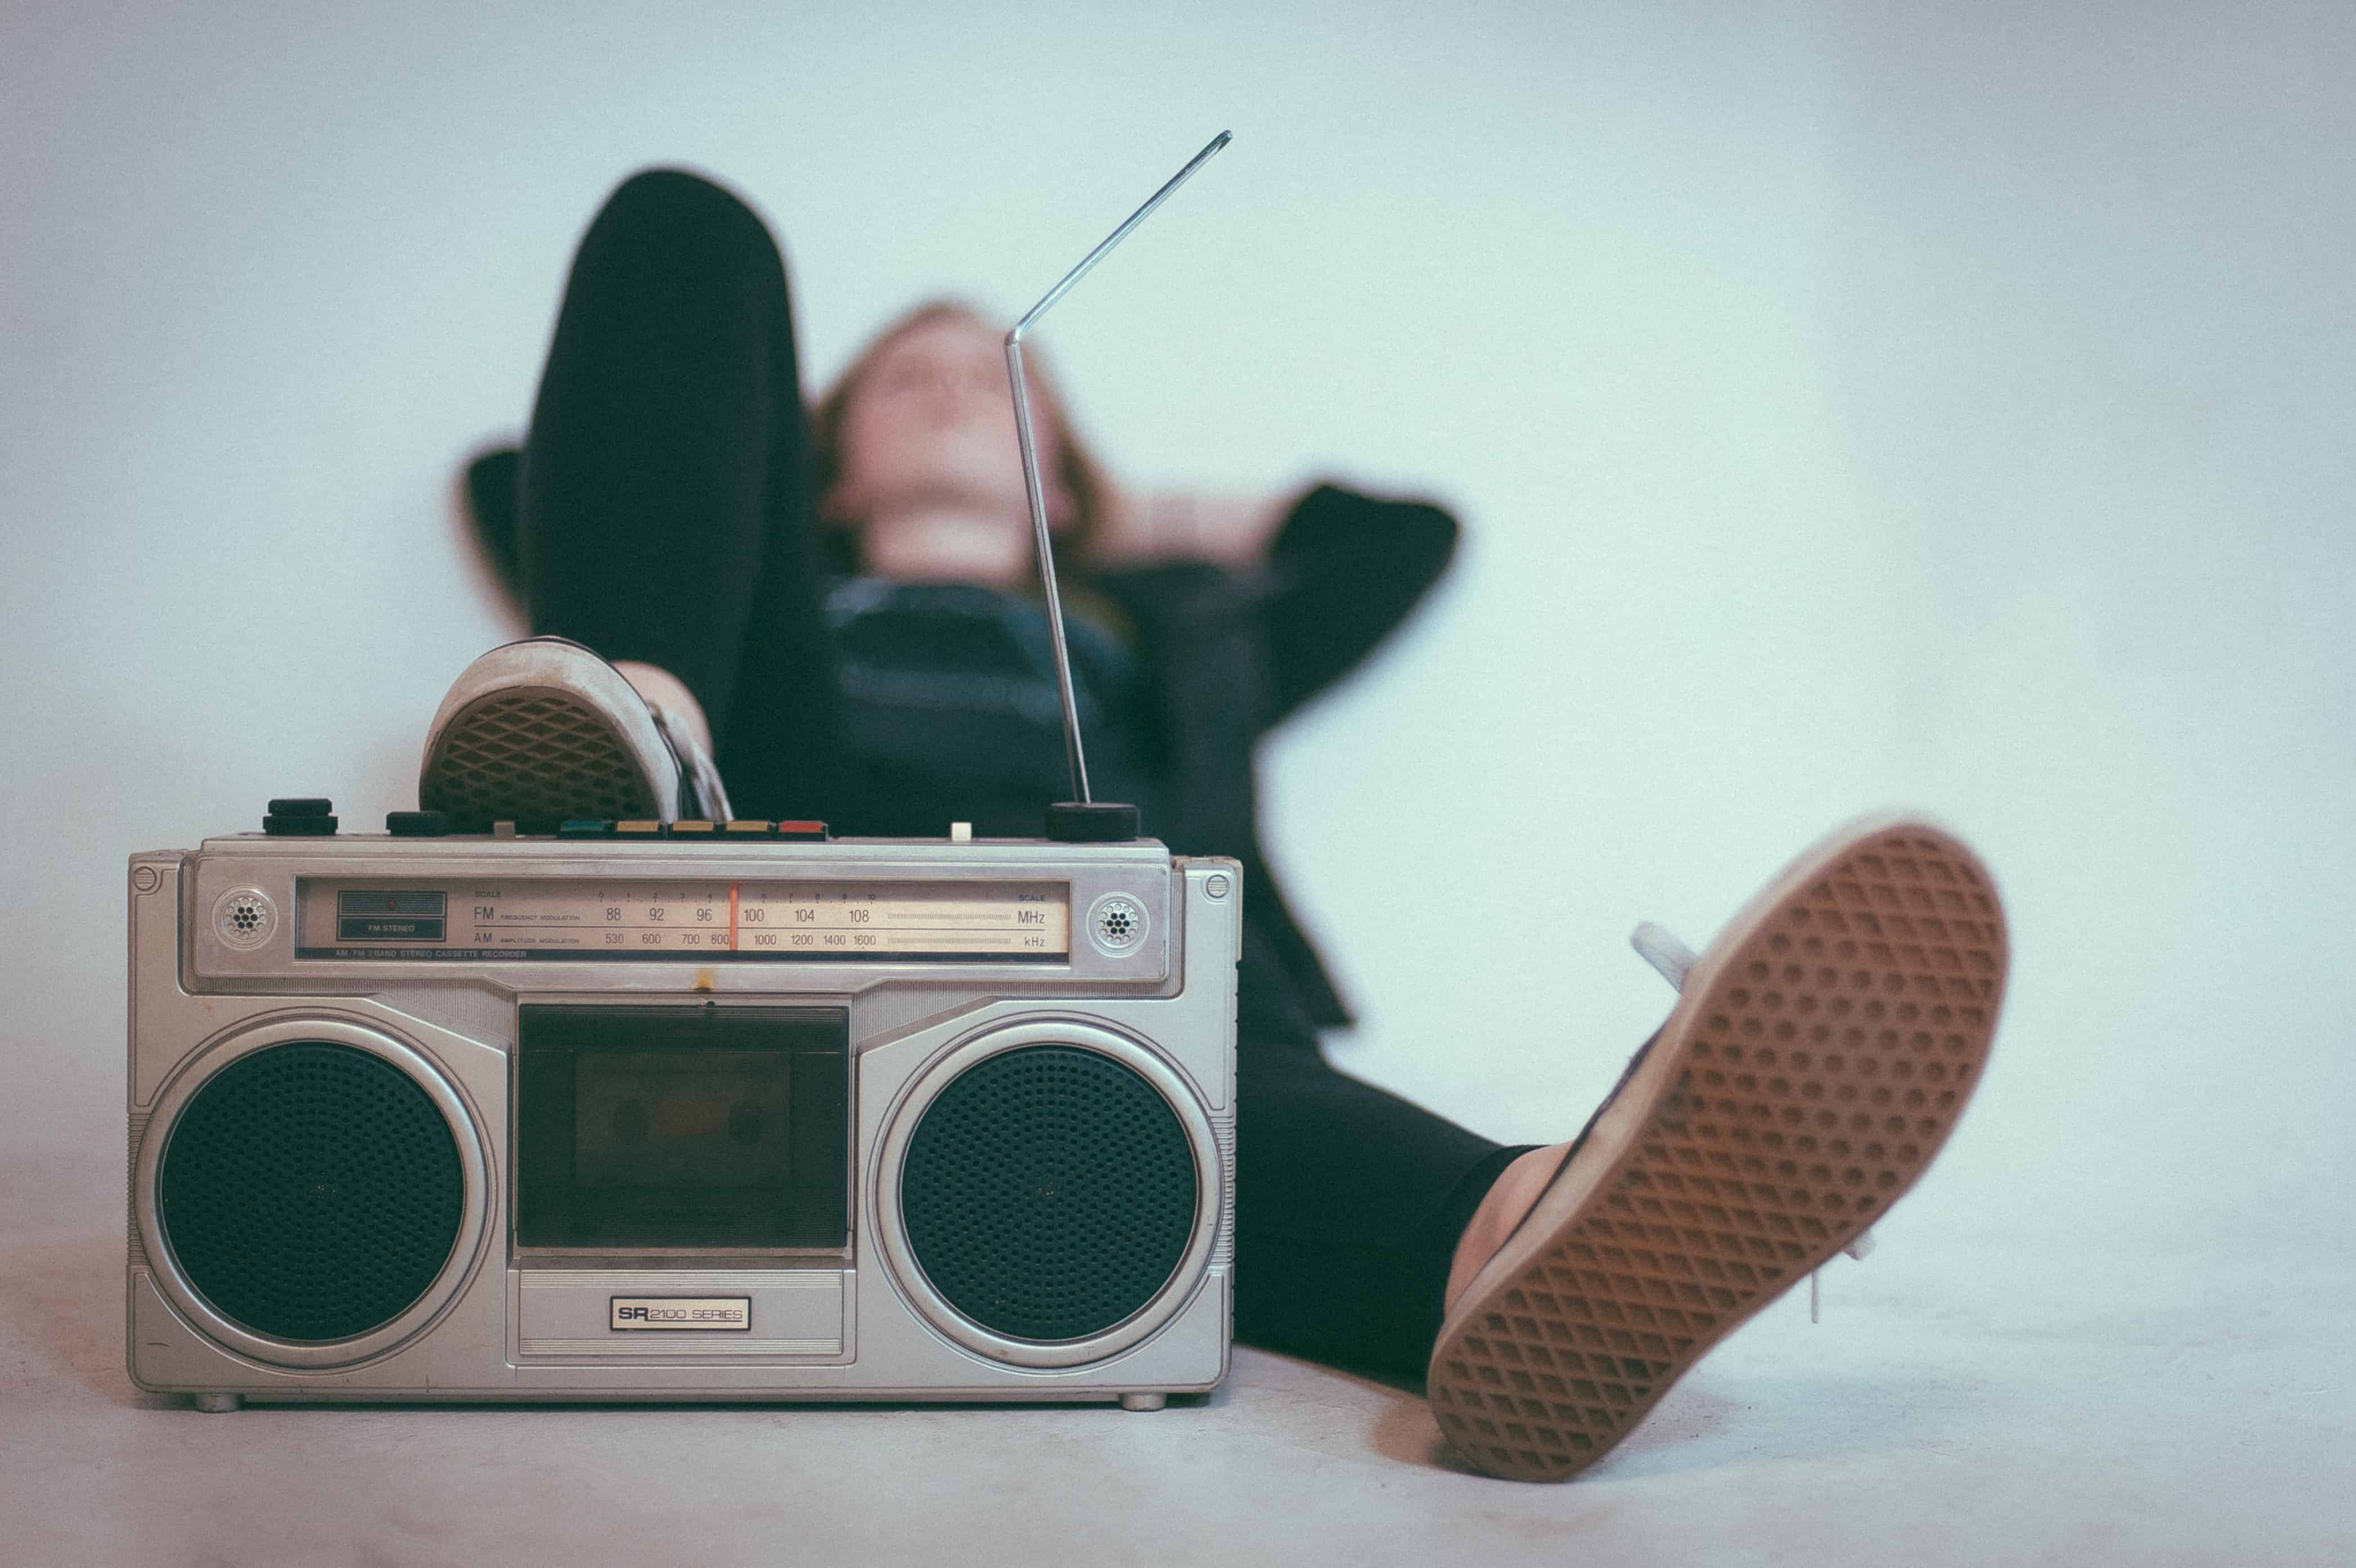 Relaxing Listening To Music